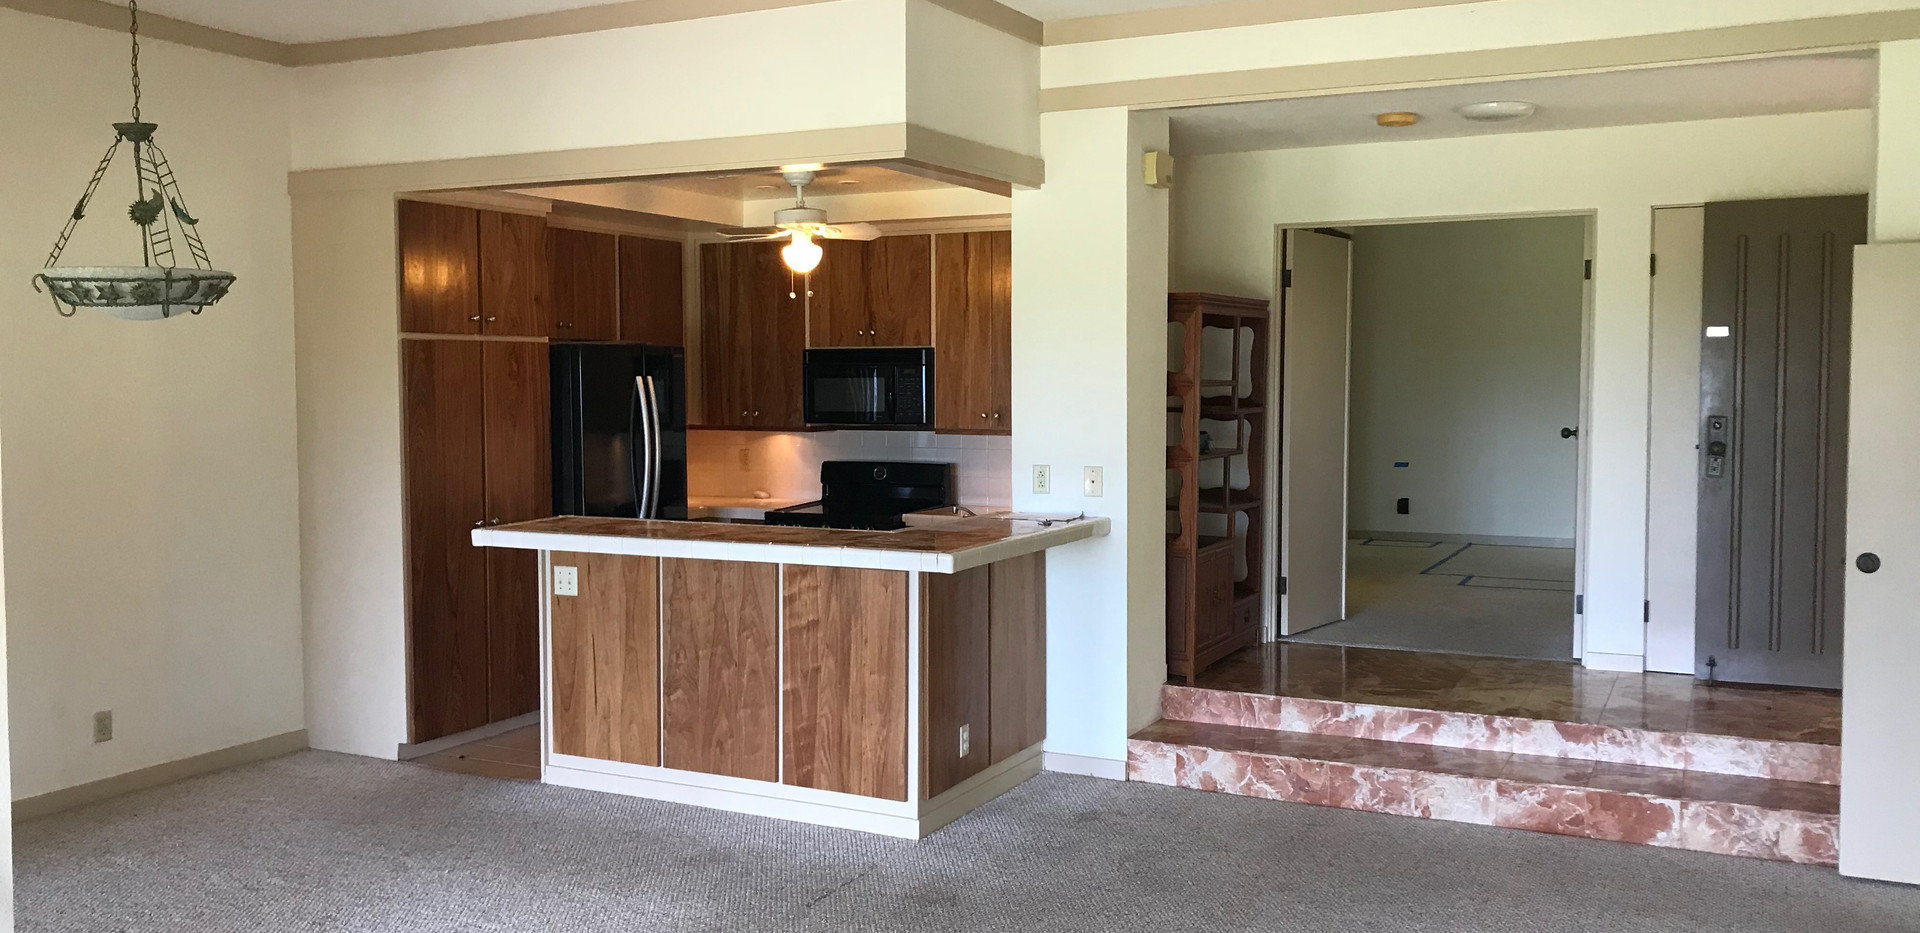 Living/Dining/Kitchen Before